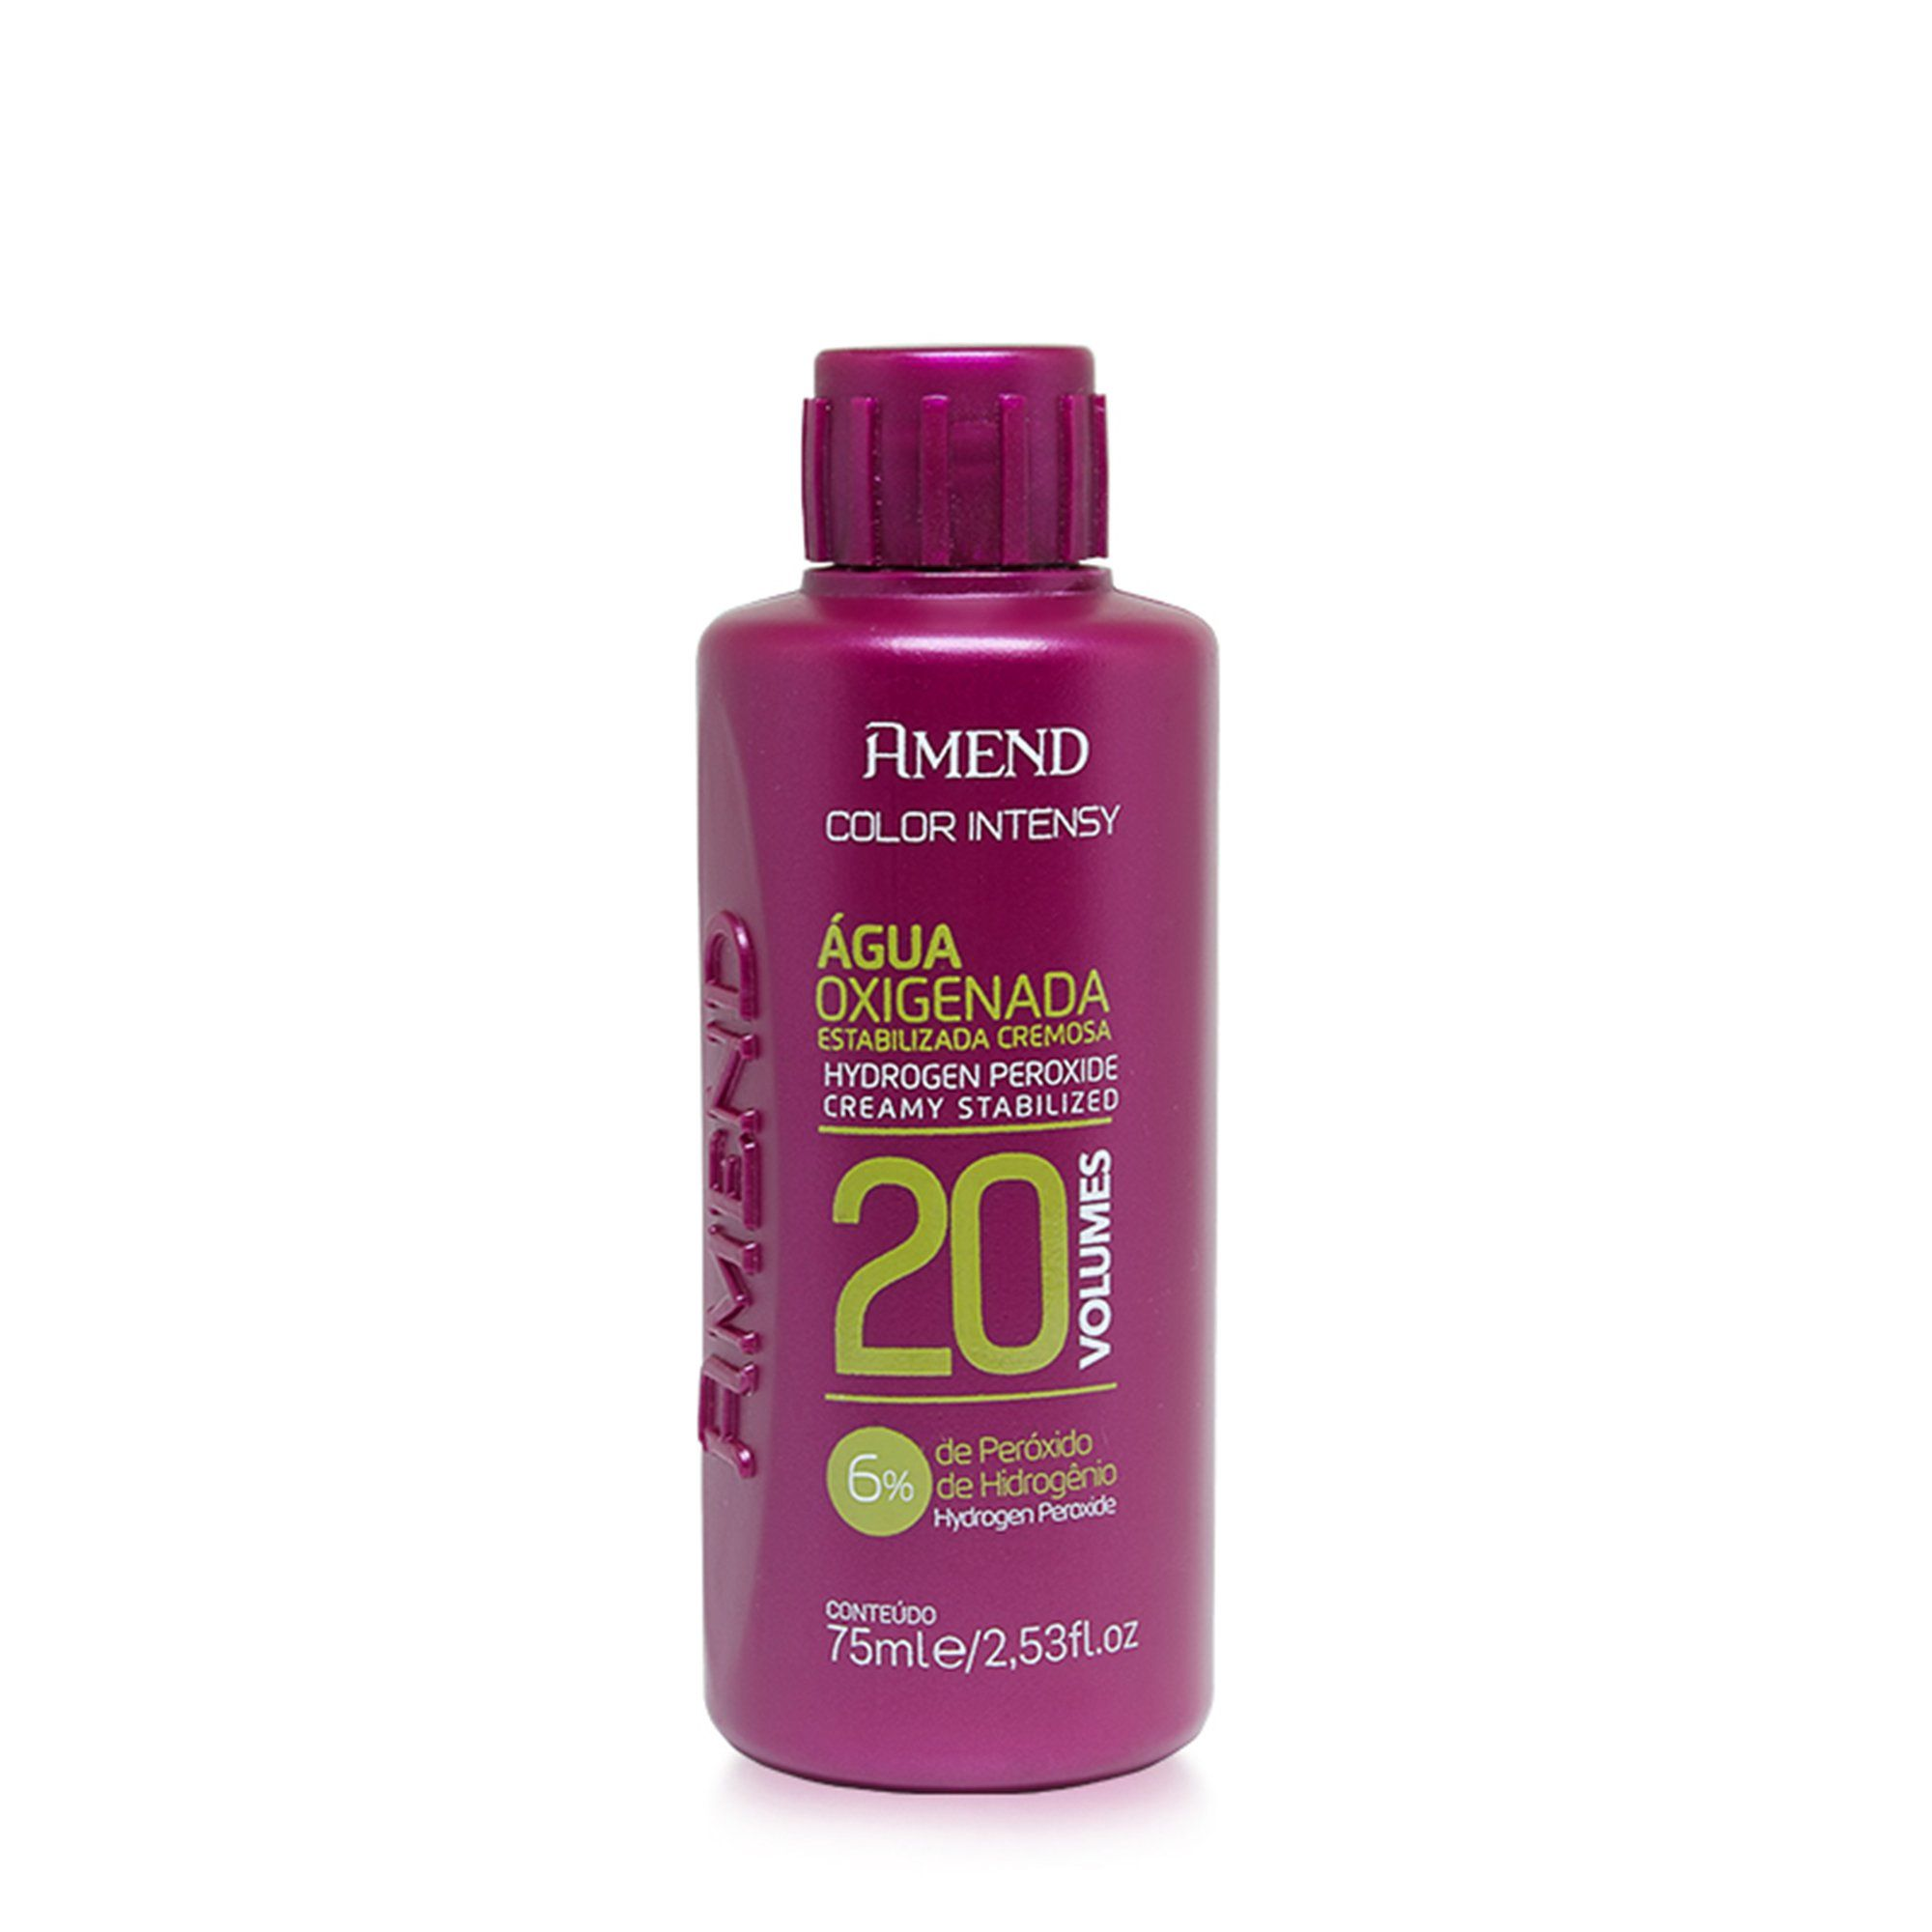 Amend Agua Oxigenada Estabilizada 20Vol - 75ml